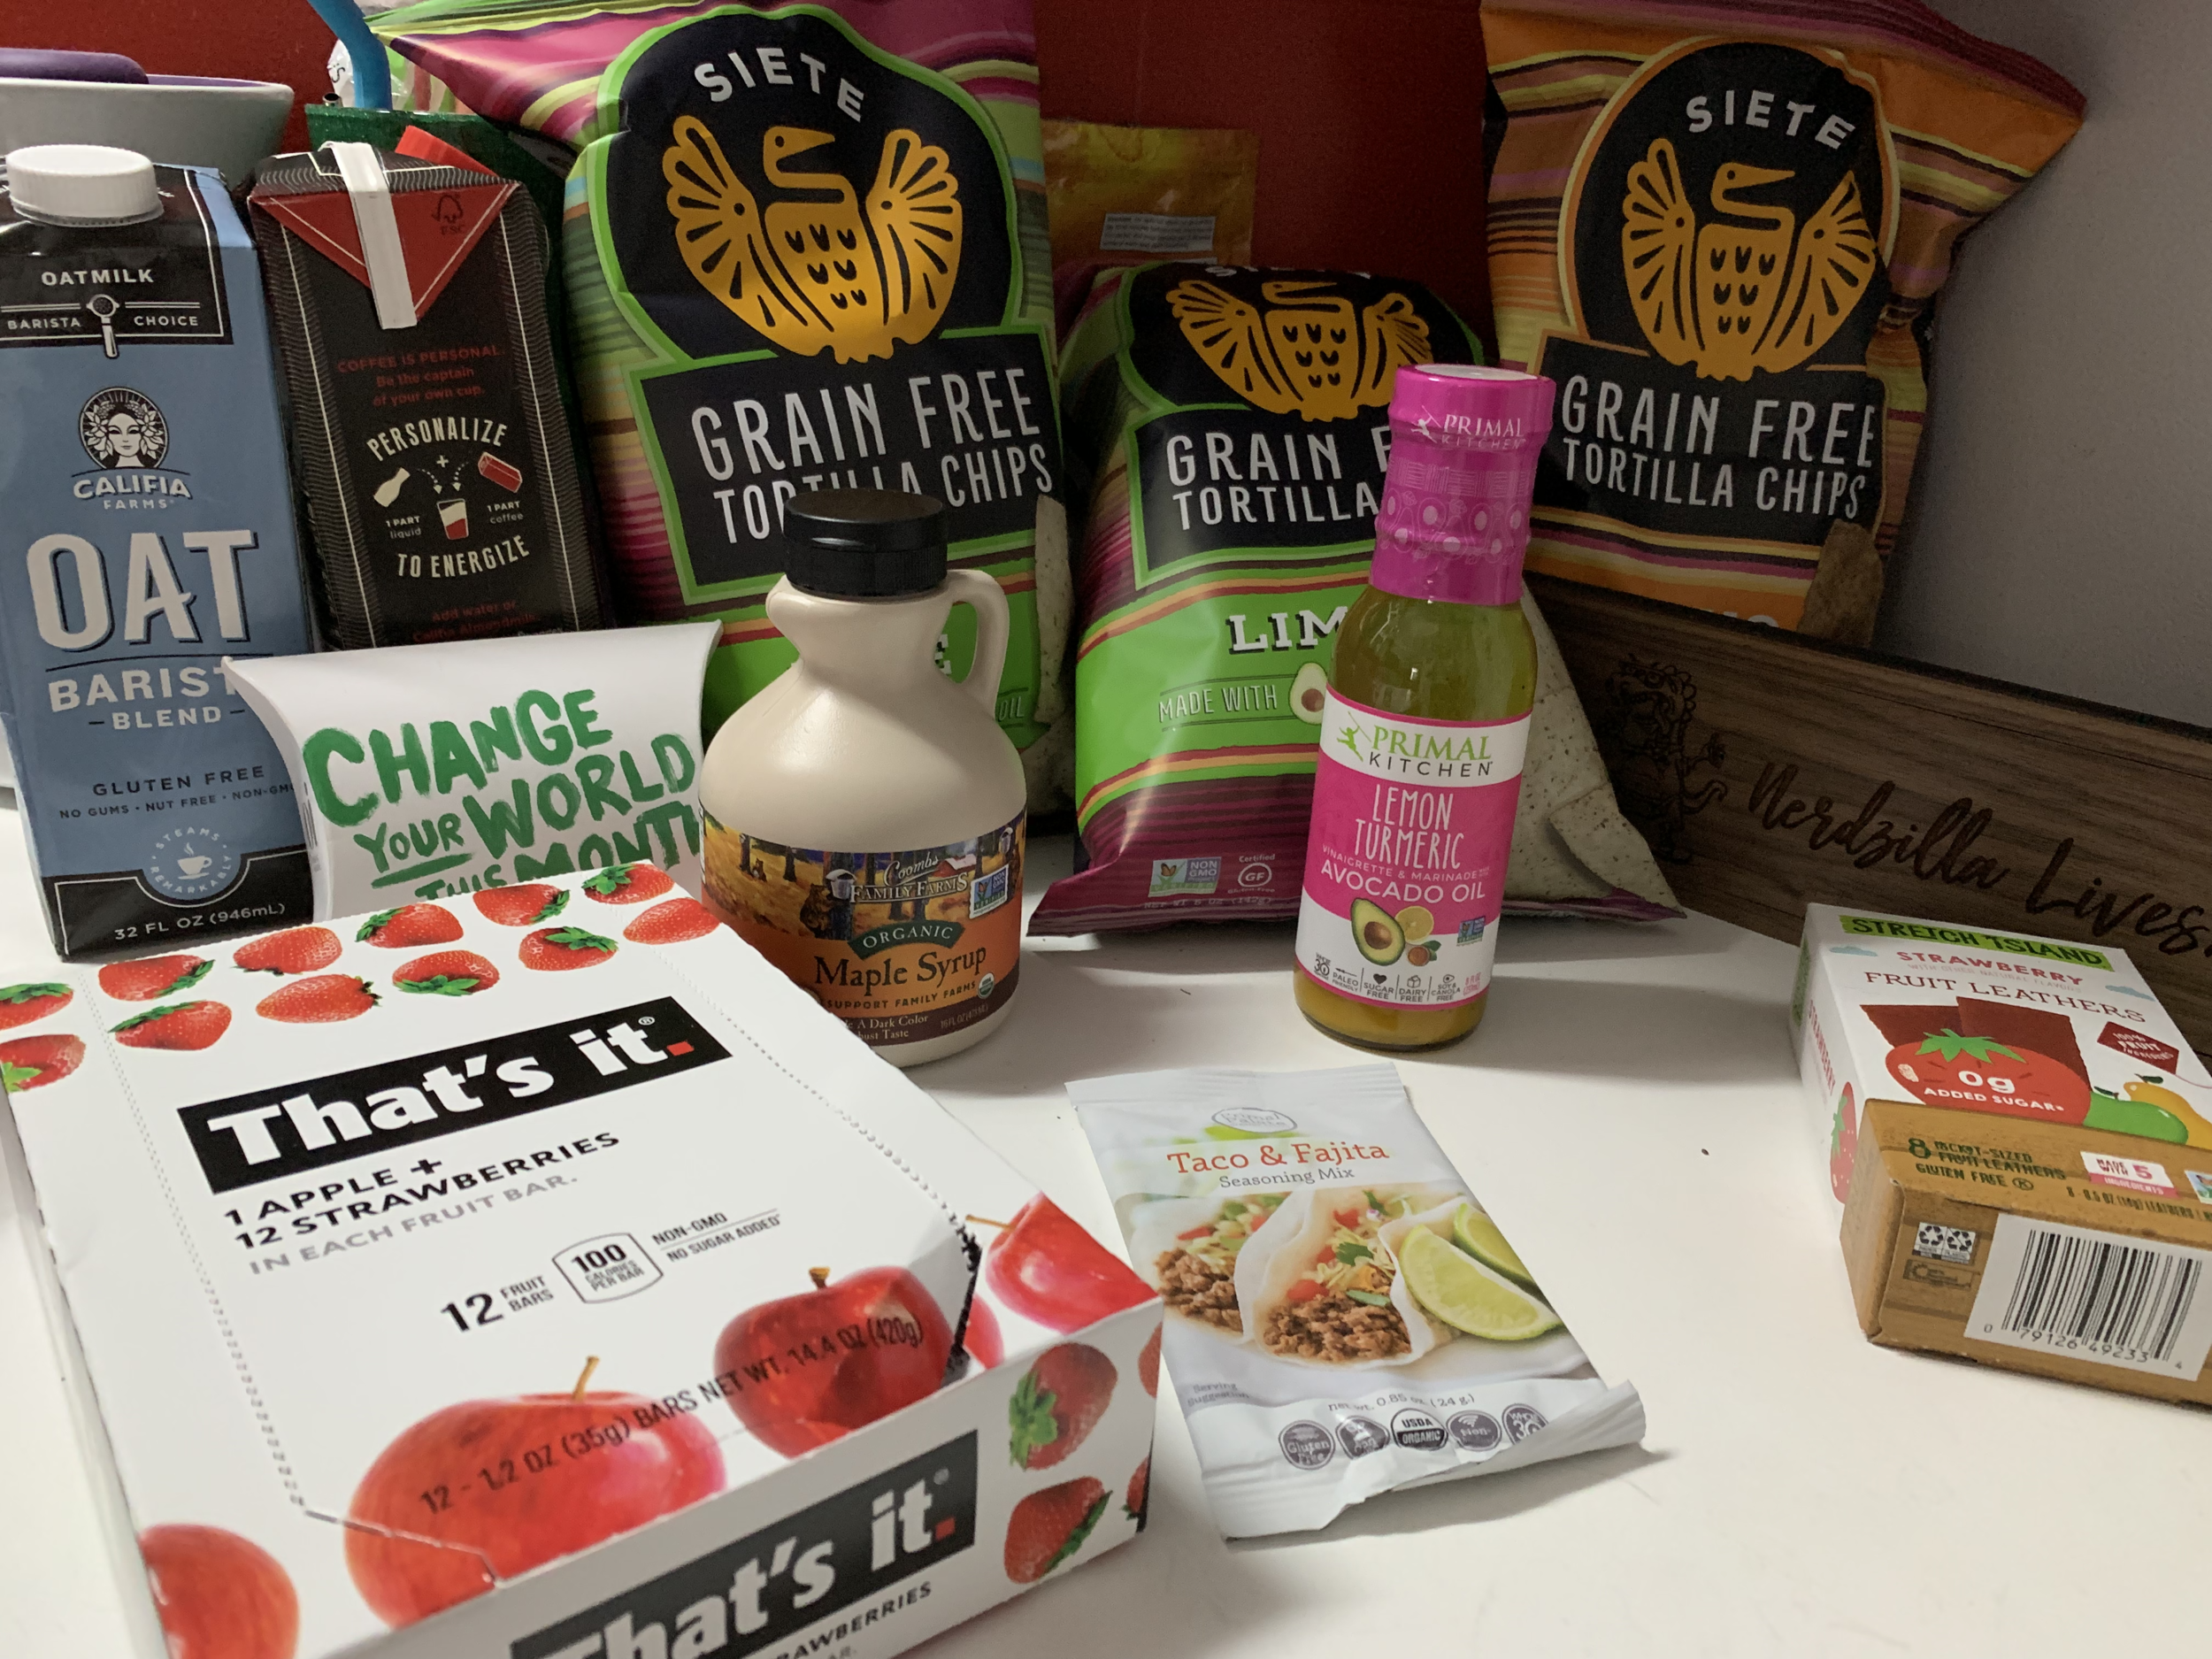 Just a few of the things I received in my most recent Thrive Market order: Gluten free, corn free, all organic, non-GMO products, including a salad dressing, some seasoning mix, and a free sample of non-toxic feminine hygiene products!